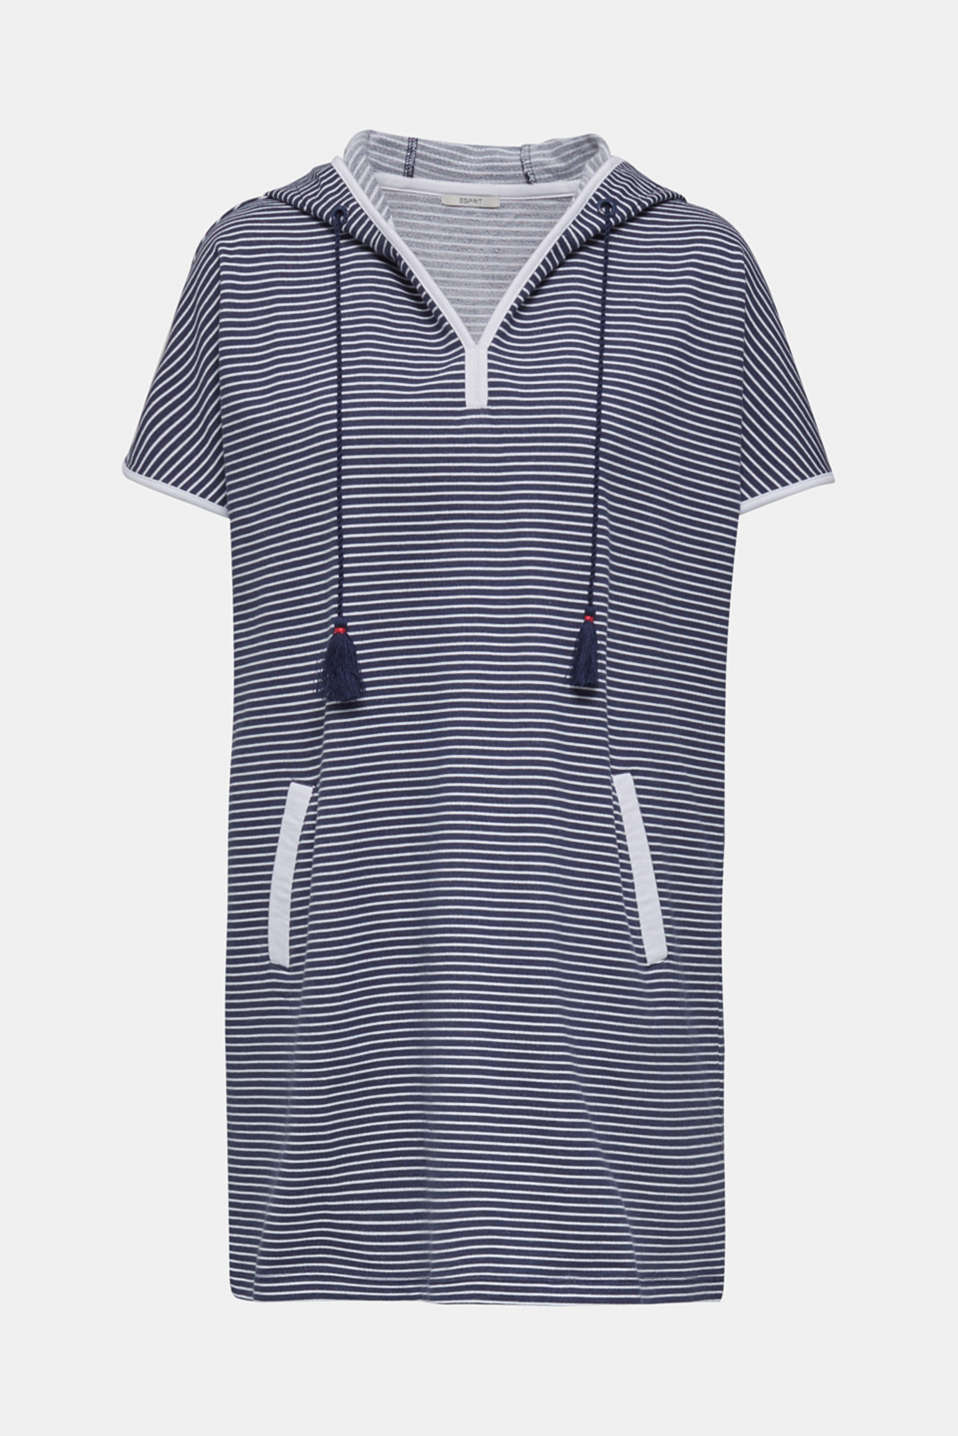 Hooded dress with stripes, 100% cotton, NAVY 2, detail image number 2